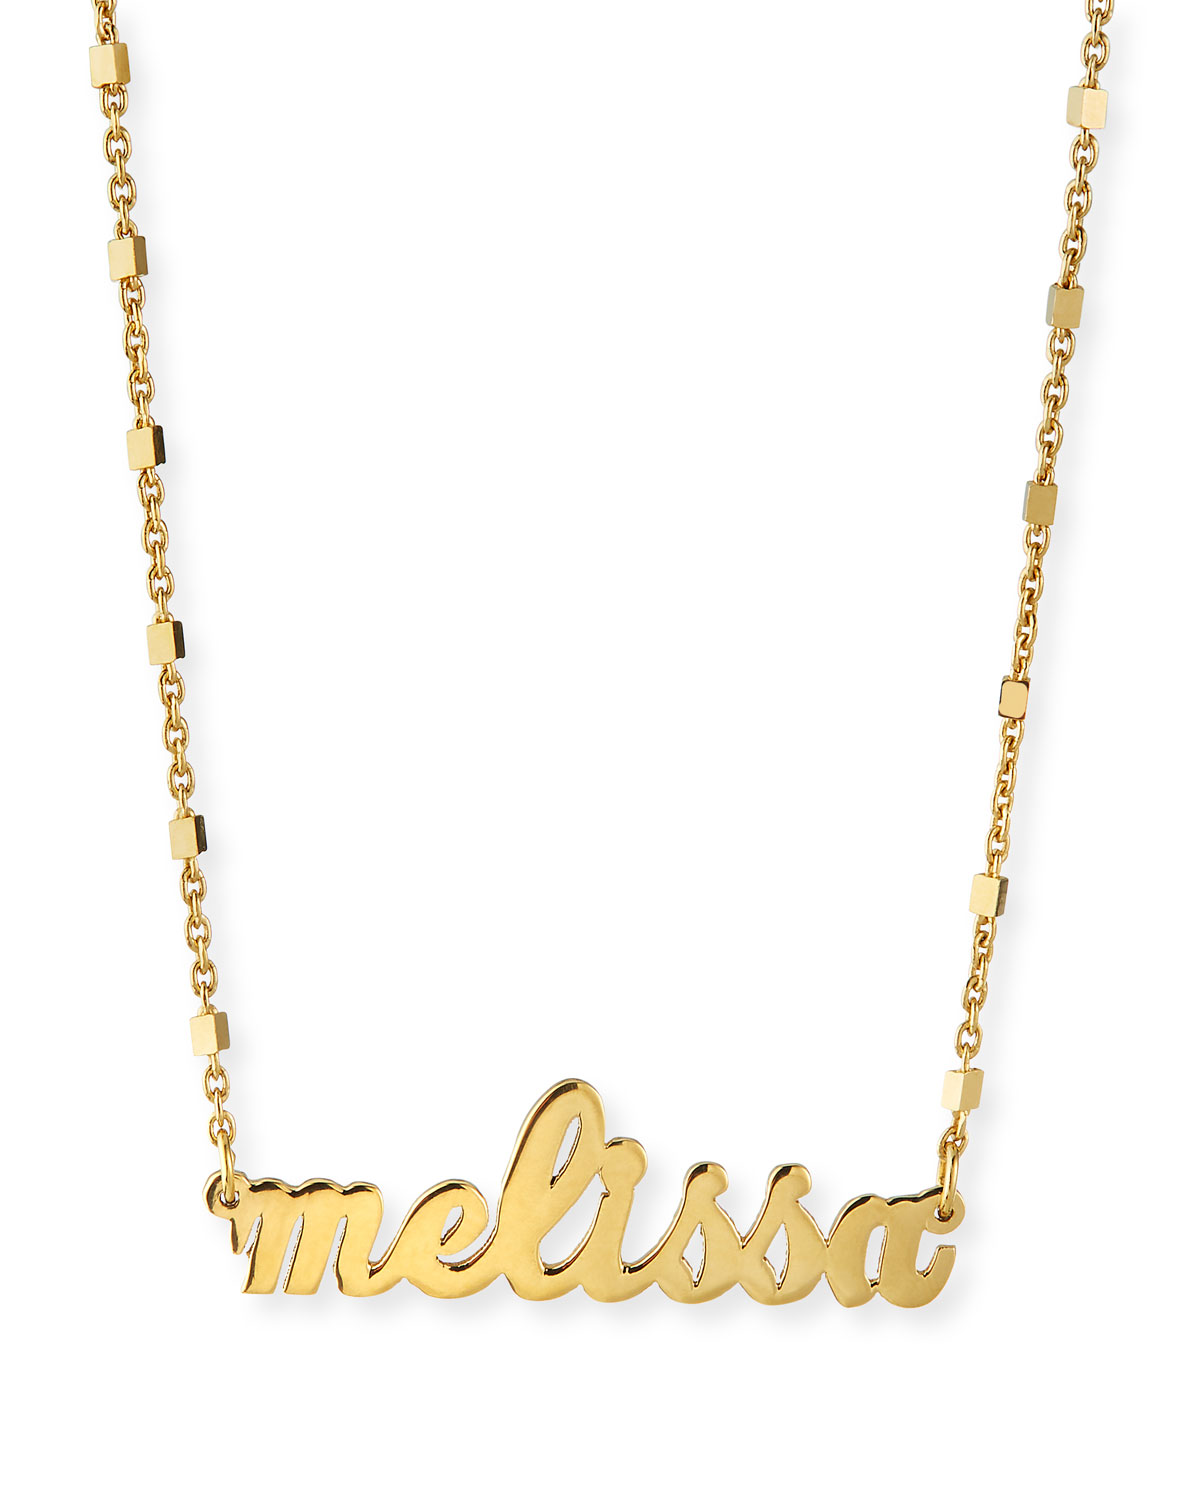 Riviera Personalized Nameplate Necklace